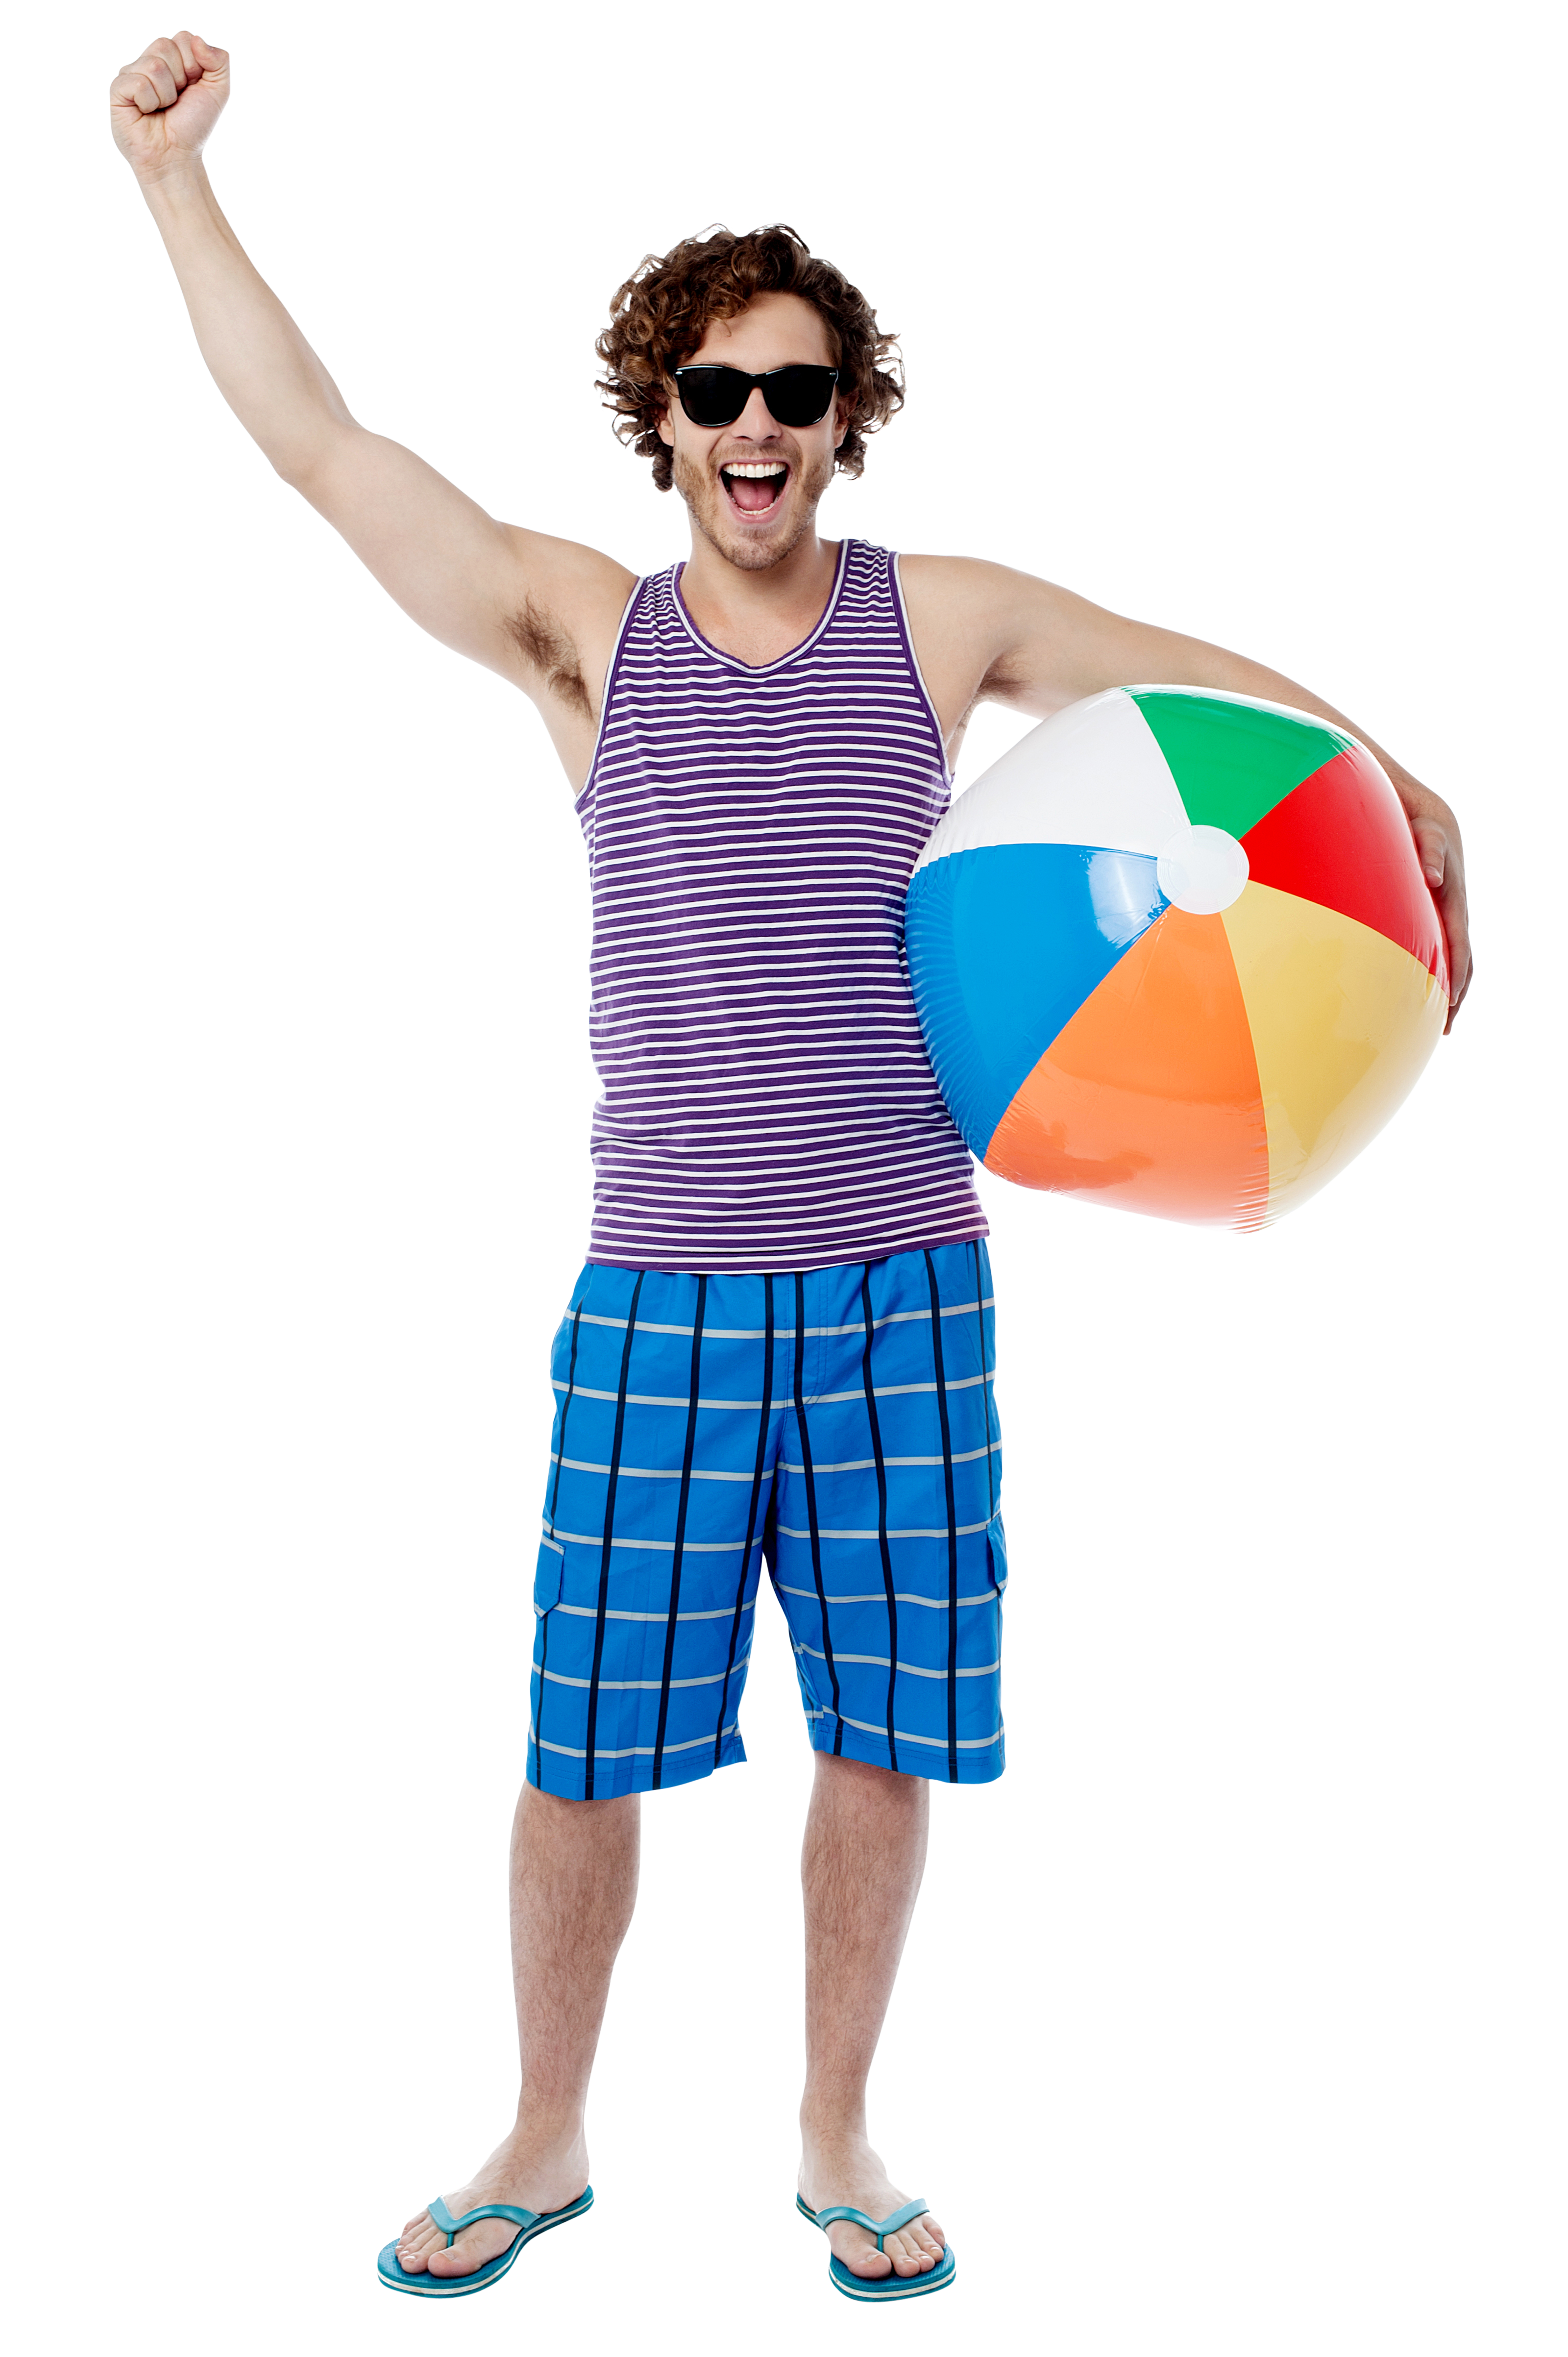 People beach png. Men with ball image